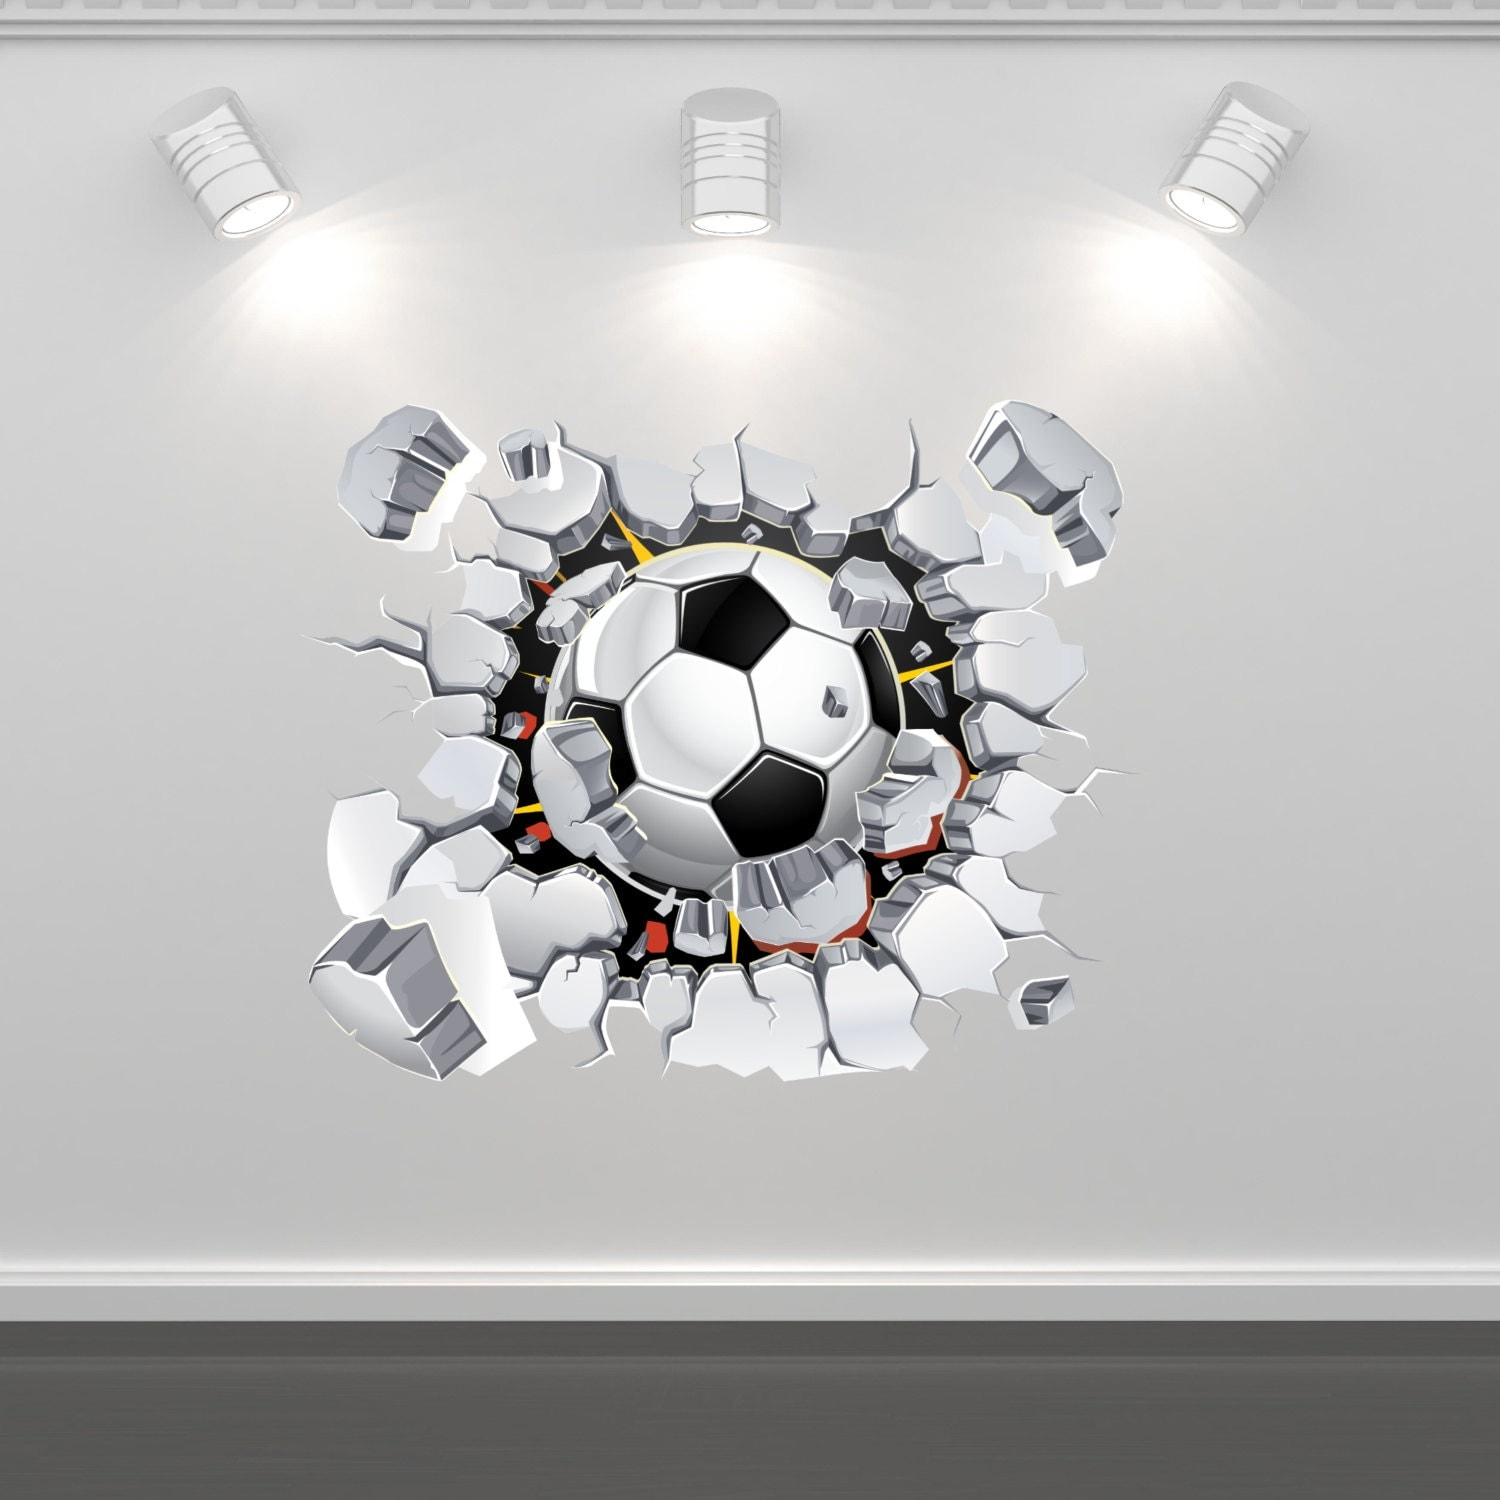 football soccer wall art sticker mural decal graphic boys click to enlarge image